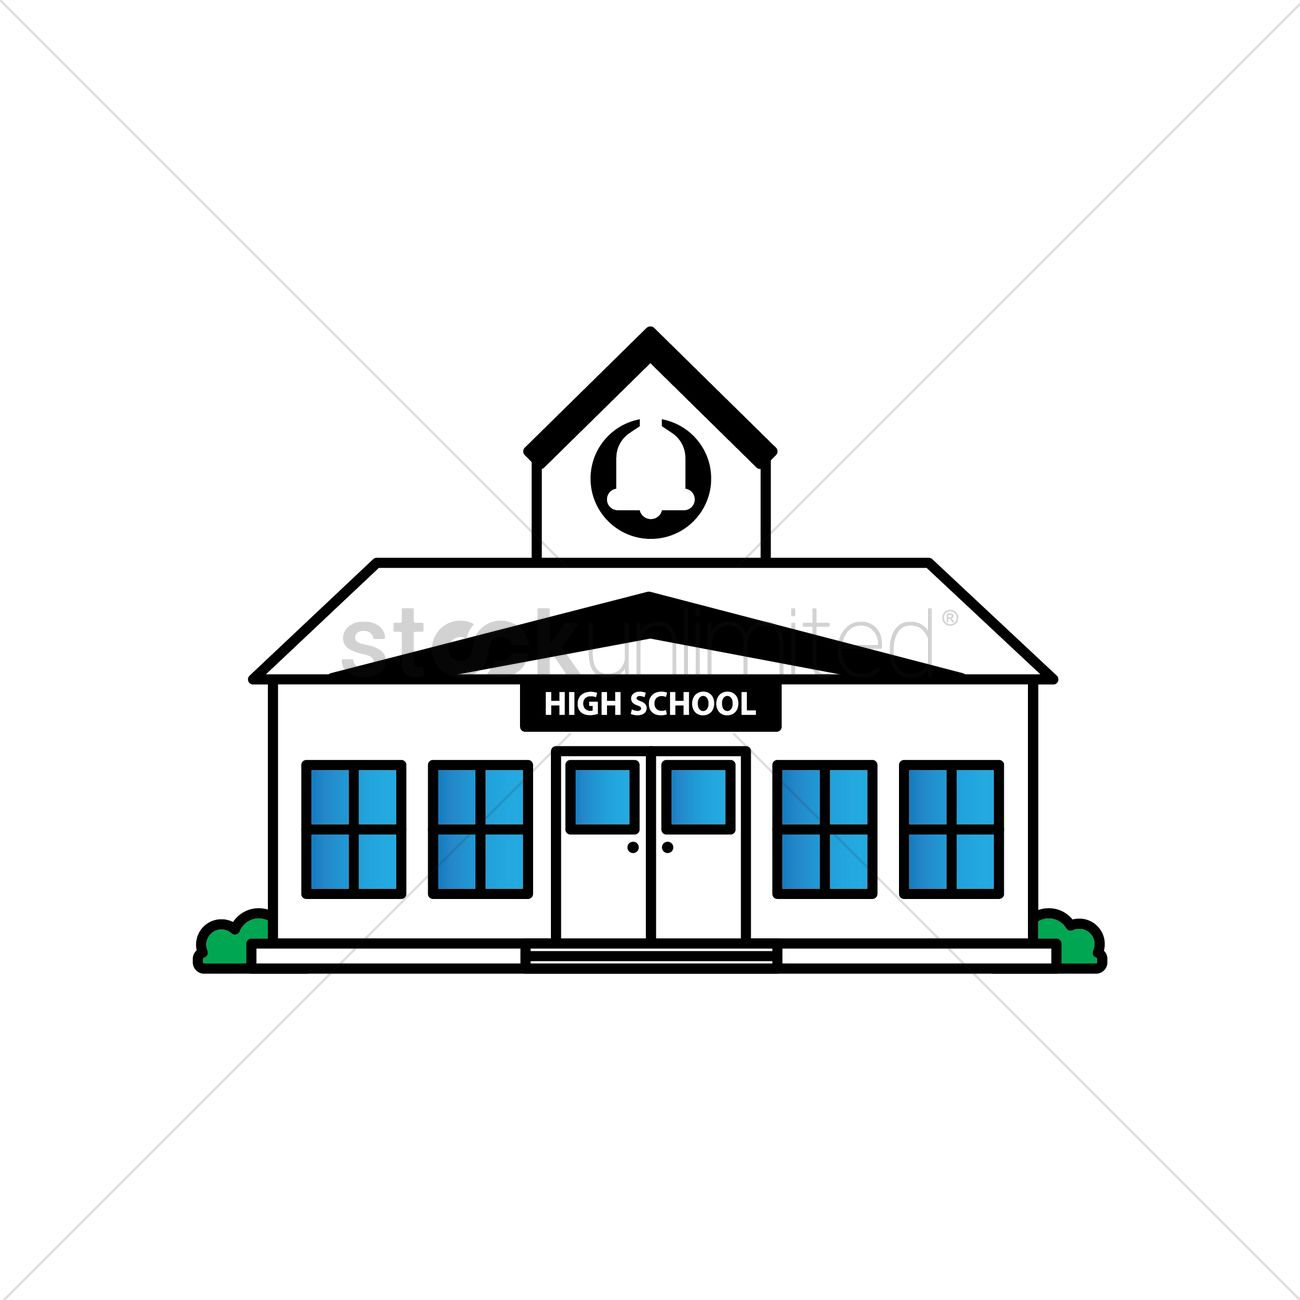 free high school building vector image 1623541 stockunlimited rh stockunlimited com building victorian corner shelf building vector png